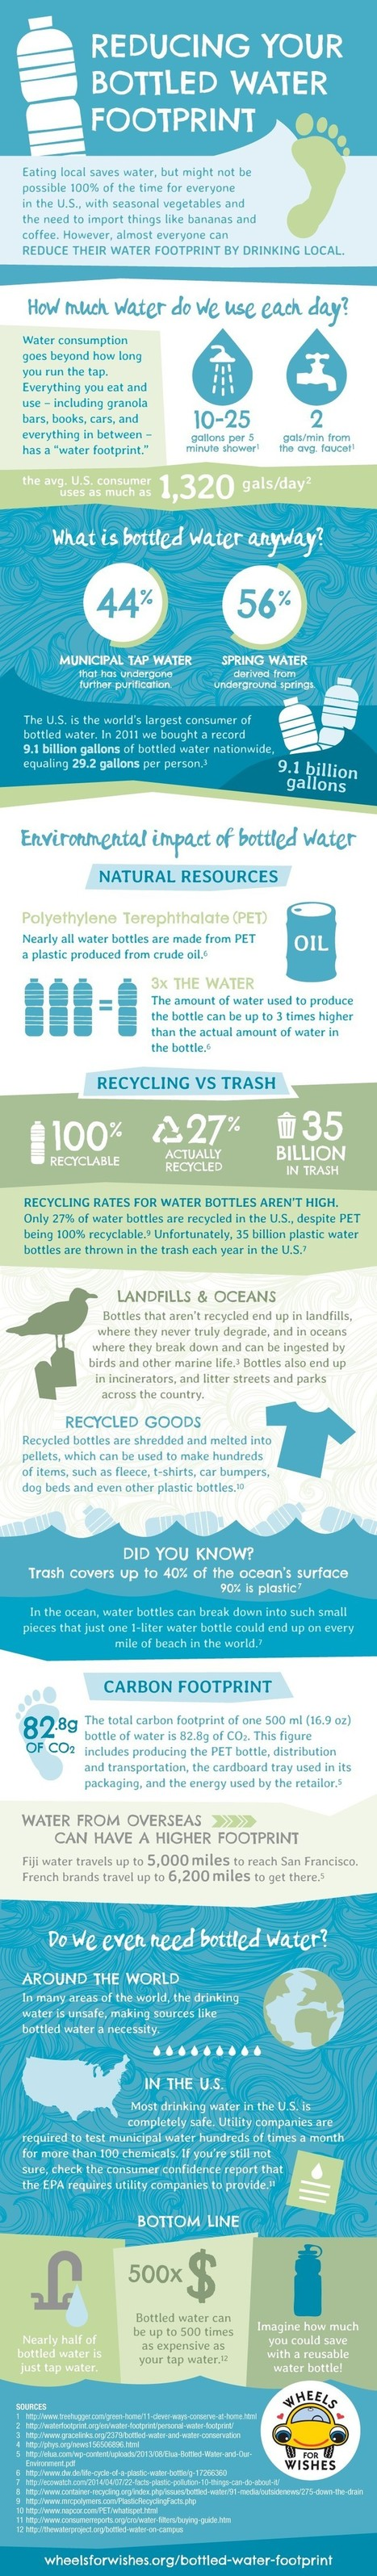 Why you should stop using Bottled Water Consumption? | All Infographics | Scoop.it